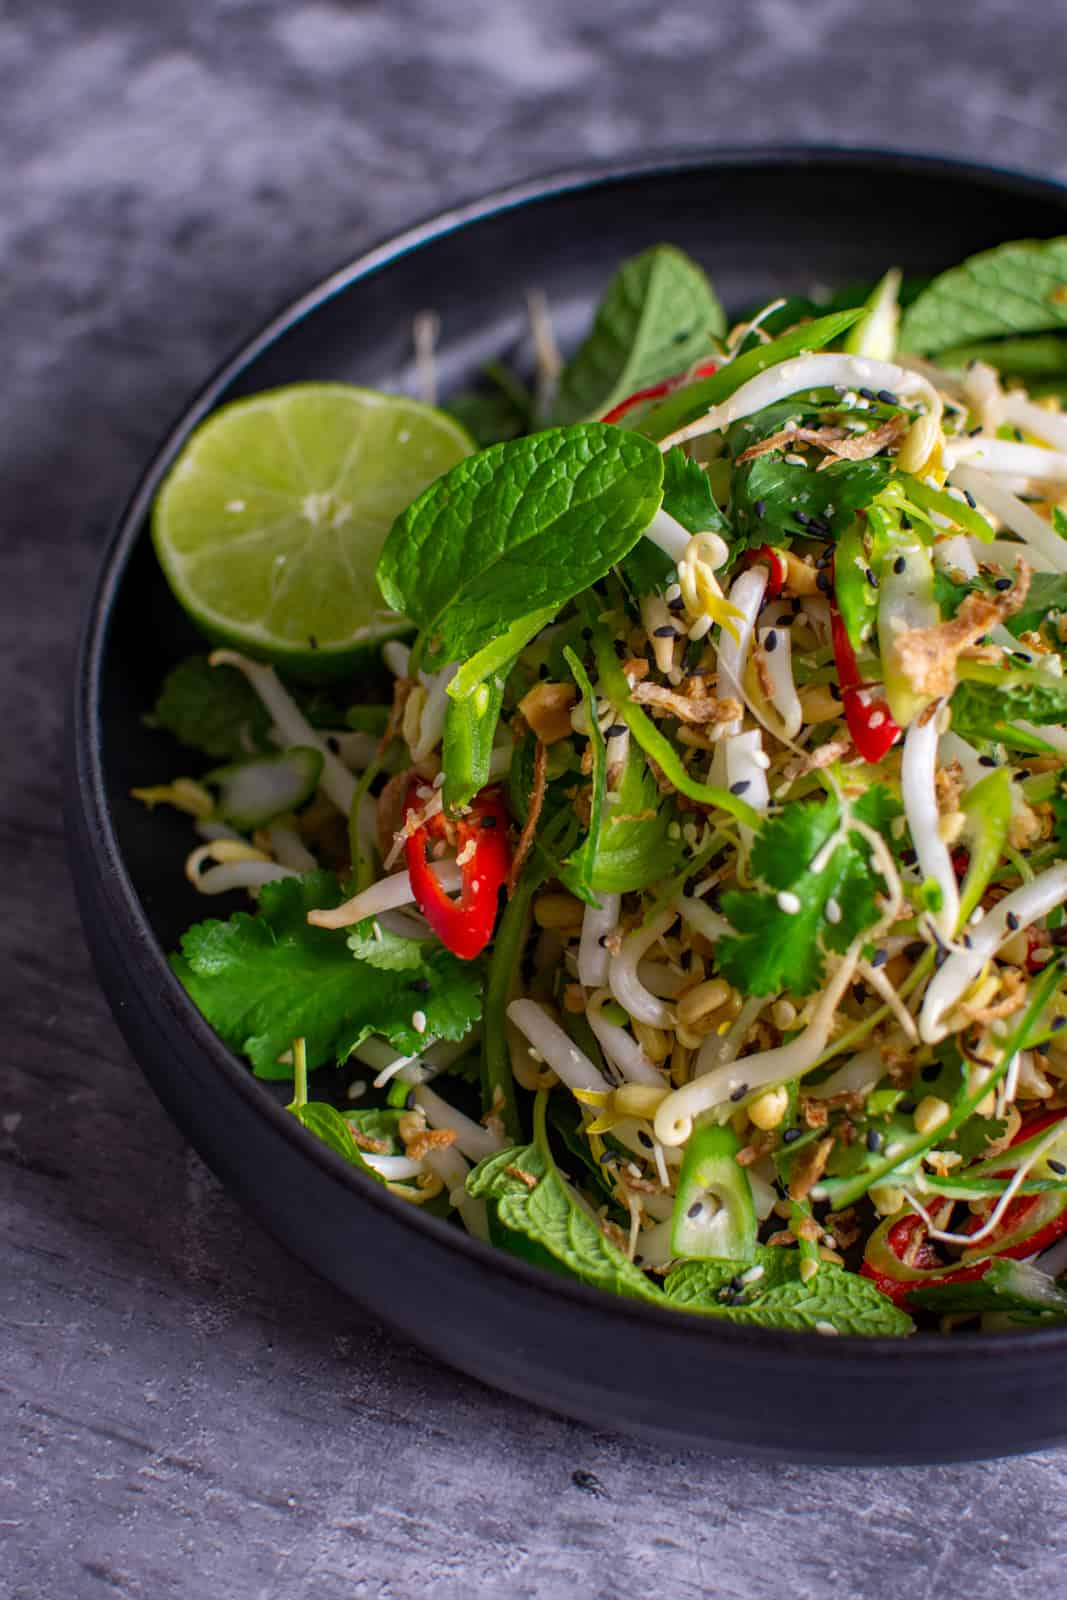 beansprout salad in a bowl